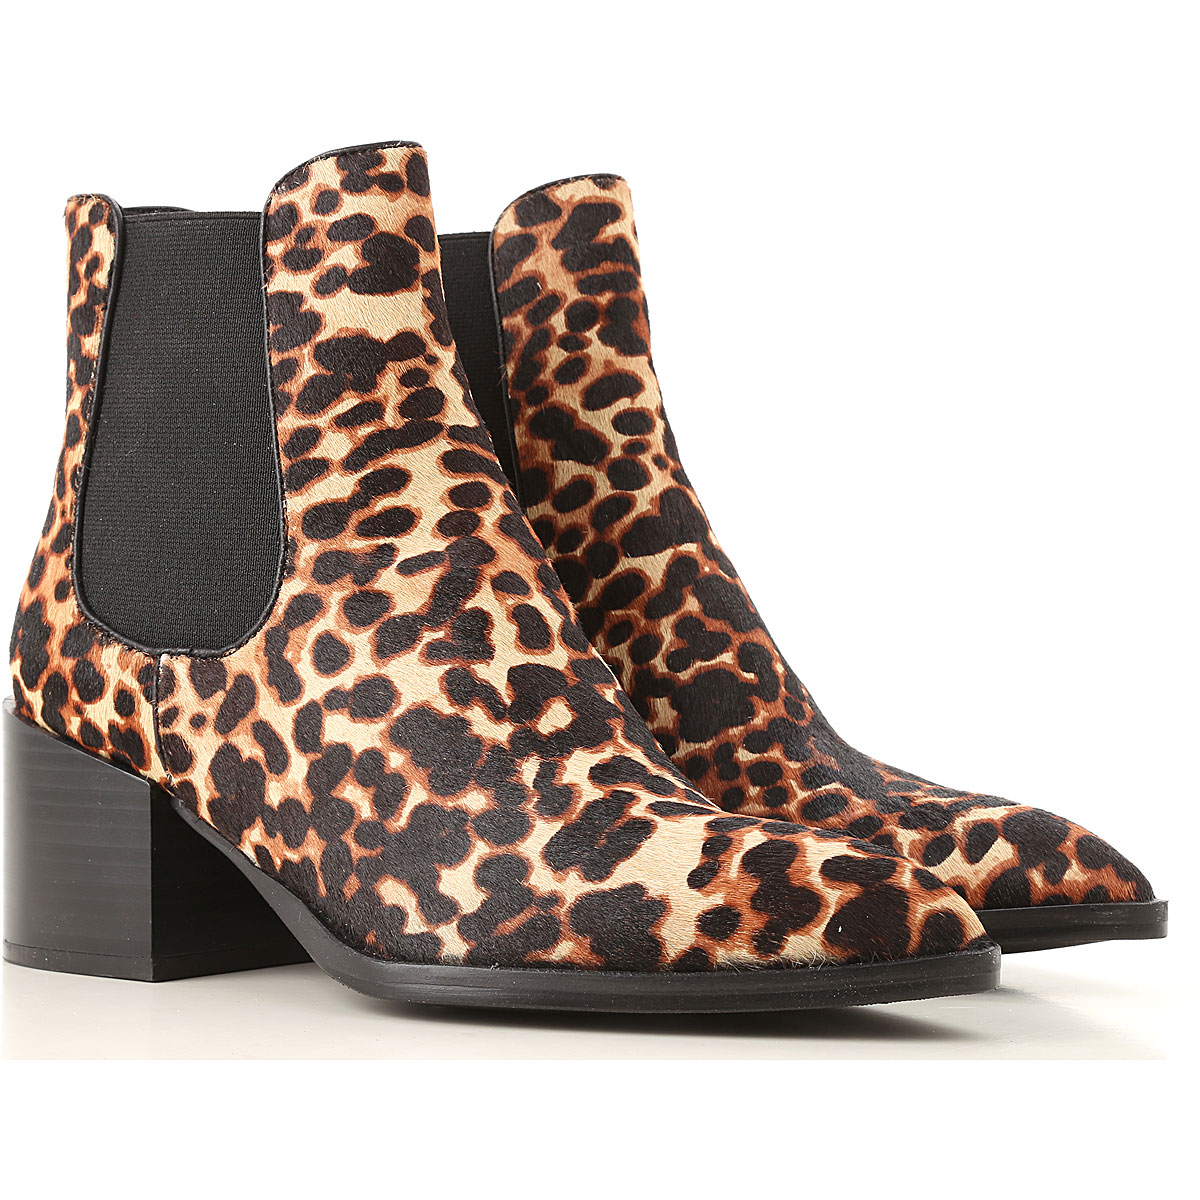 Elvio Zanon Boots for Women, Booties On Sale, Leopard, Fur, 2019, 6 7 8 9